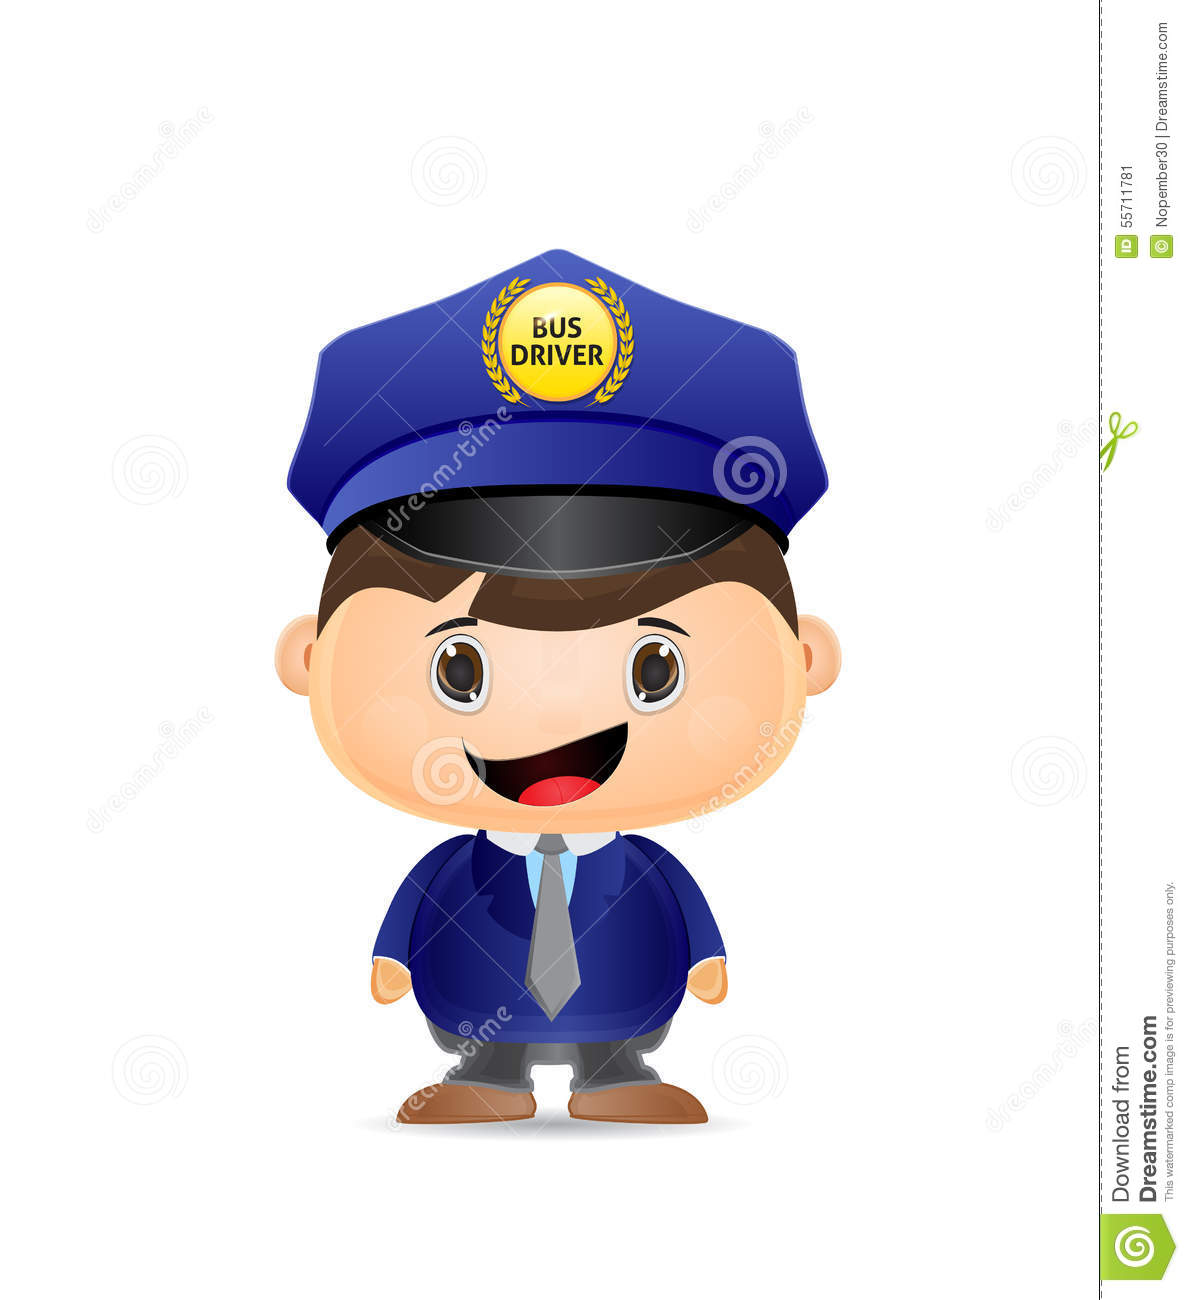 Bus Driver Clipart - Clipart Kid